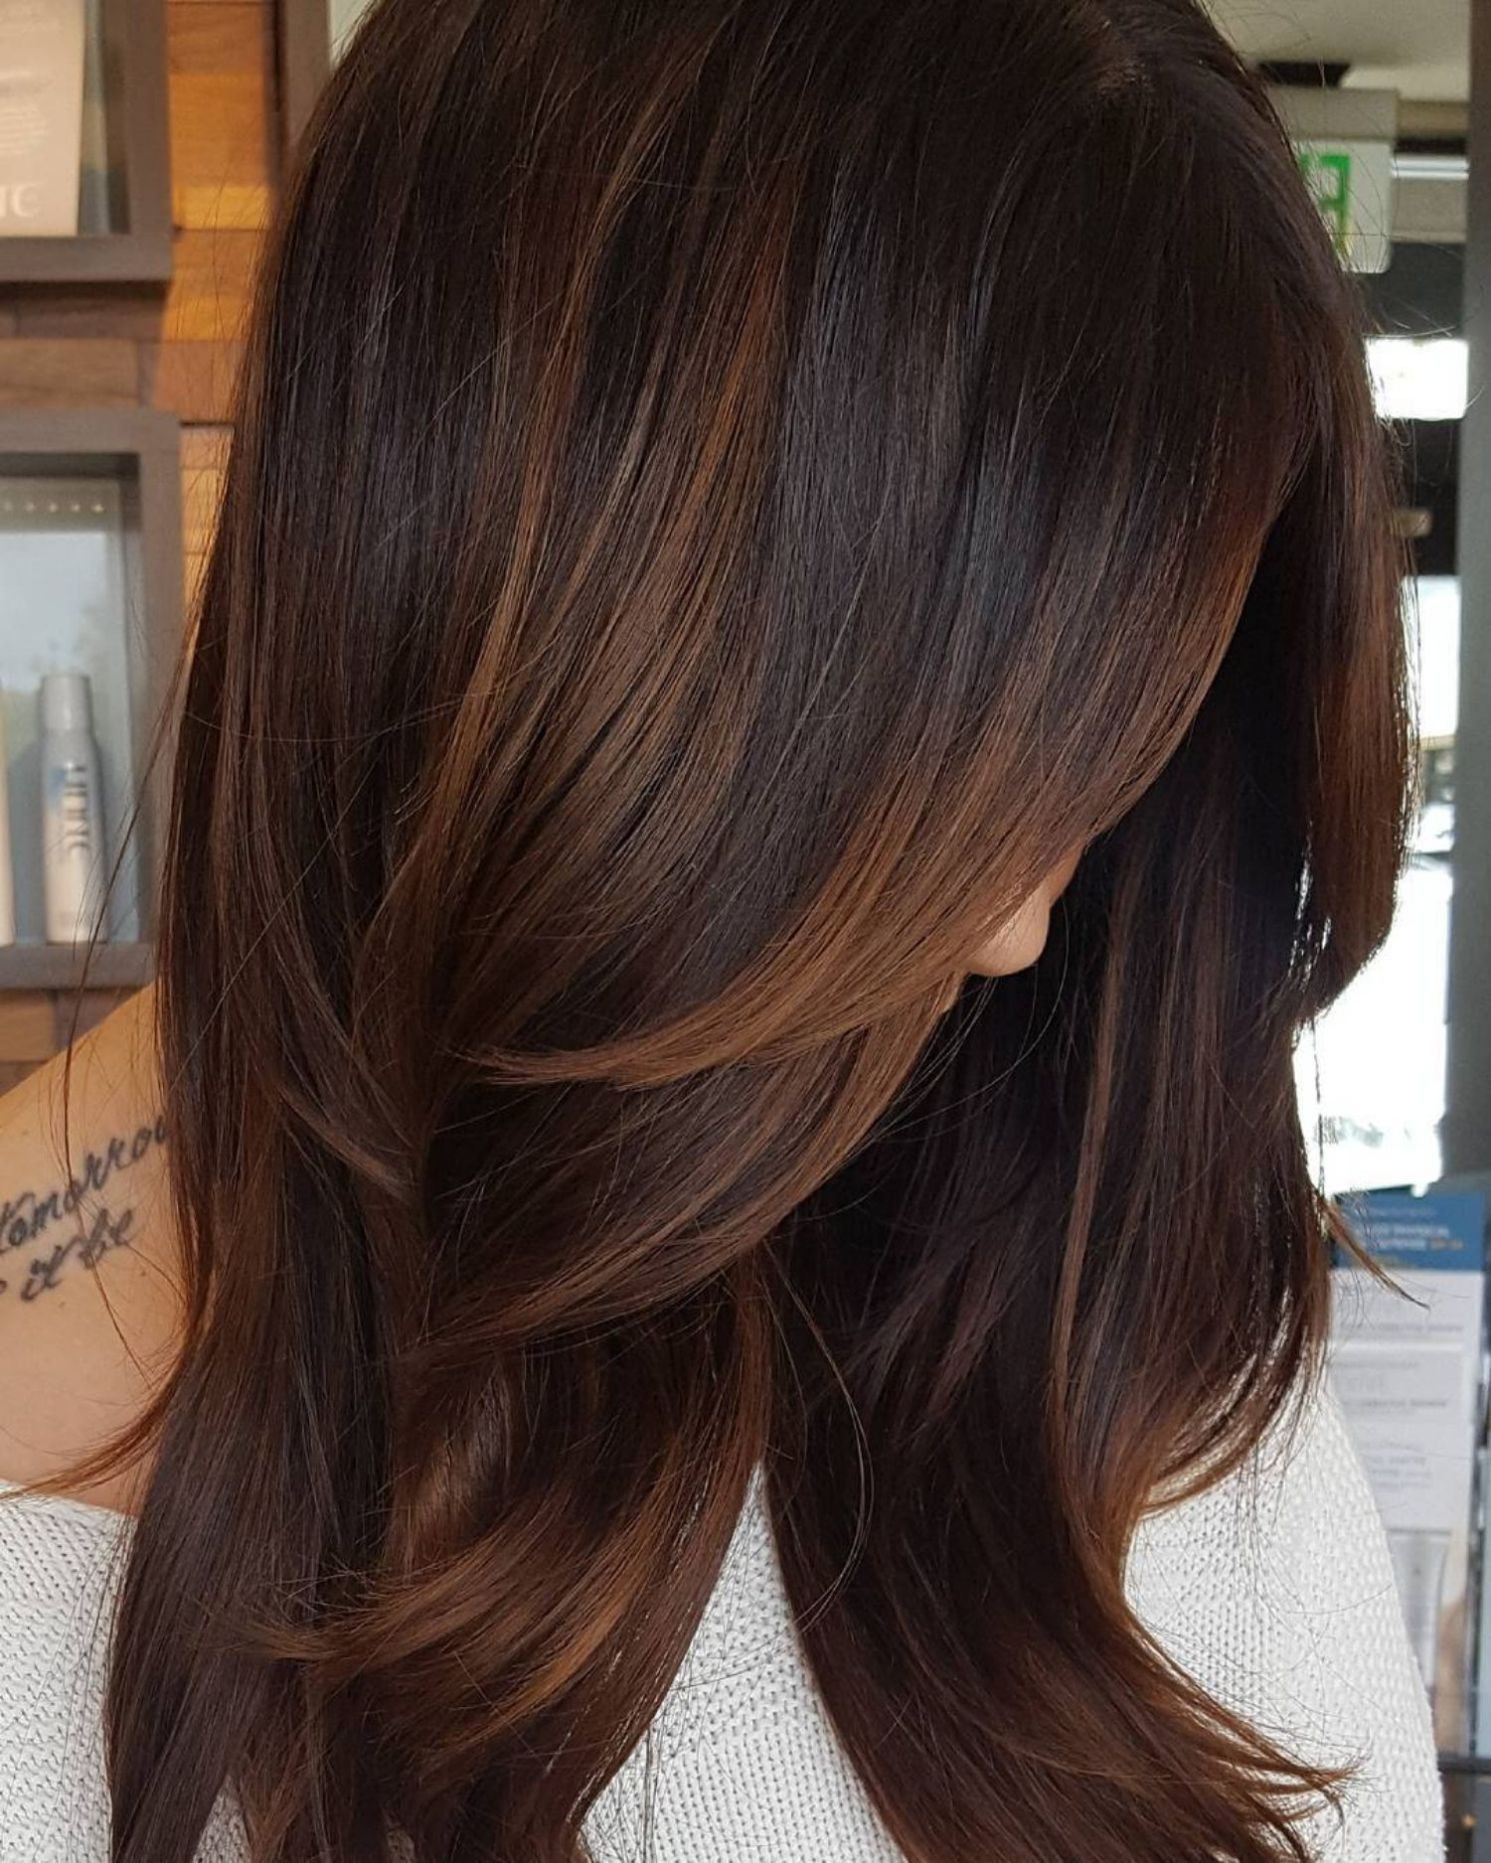 Copper Highlights For Dark Hair Hair Styles Dark Hair With Highlights Hair Highlights